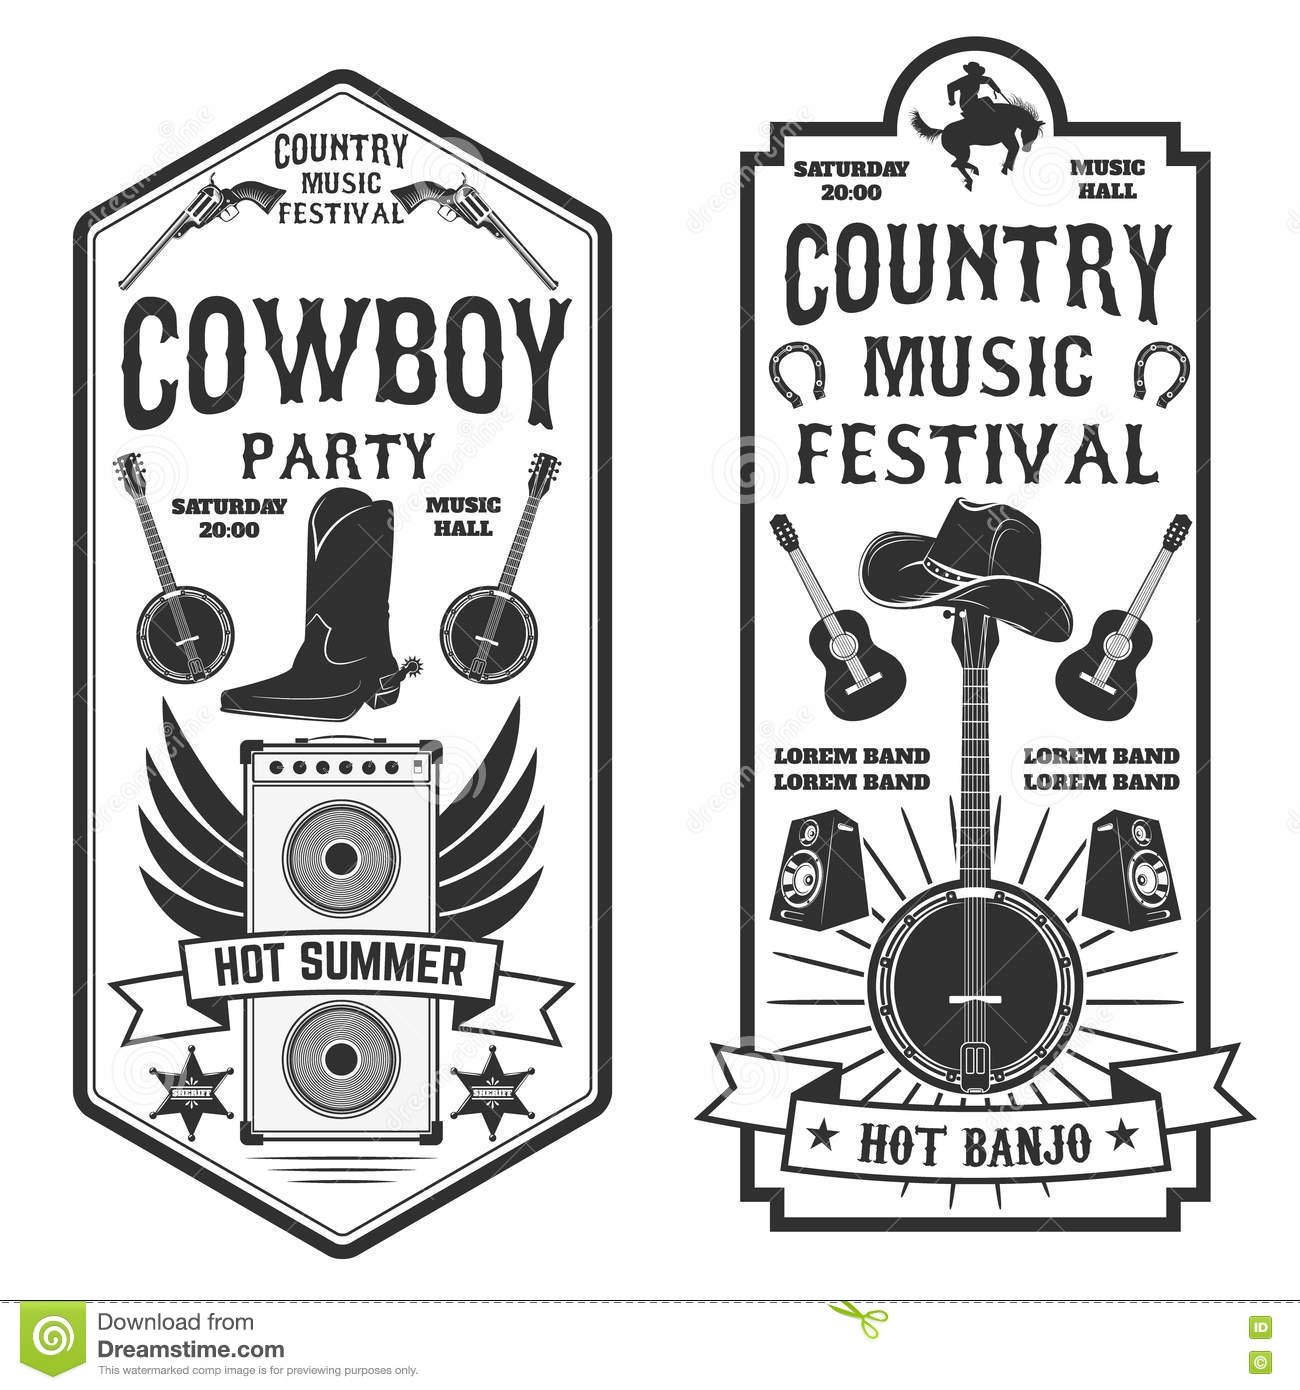 Country music festival flyer. Cowboy party. Western music festi